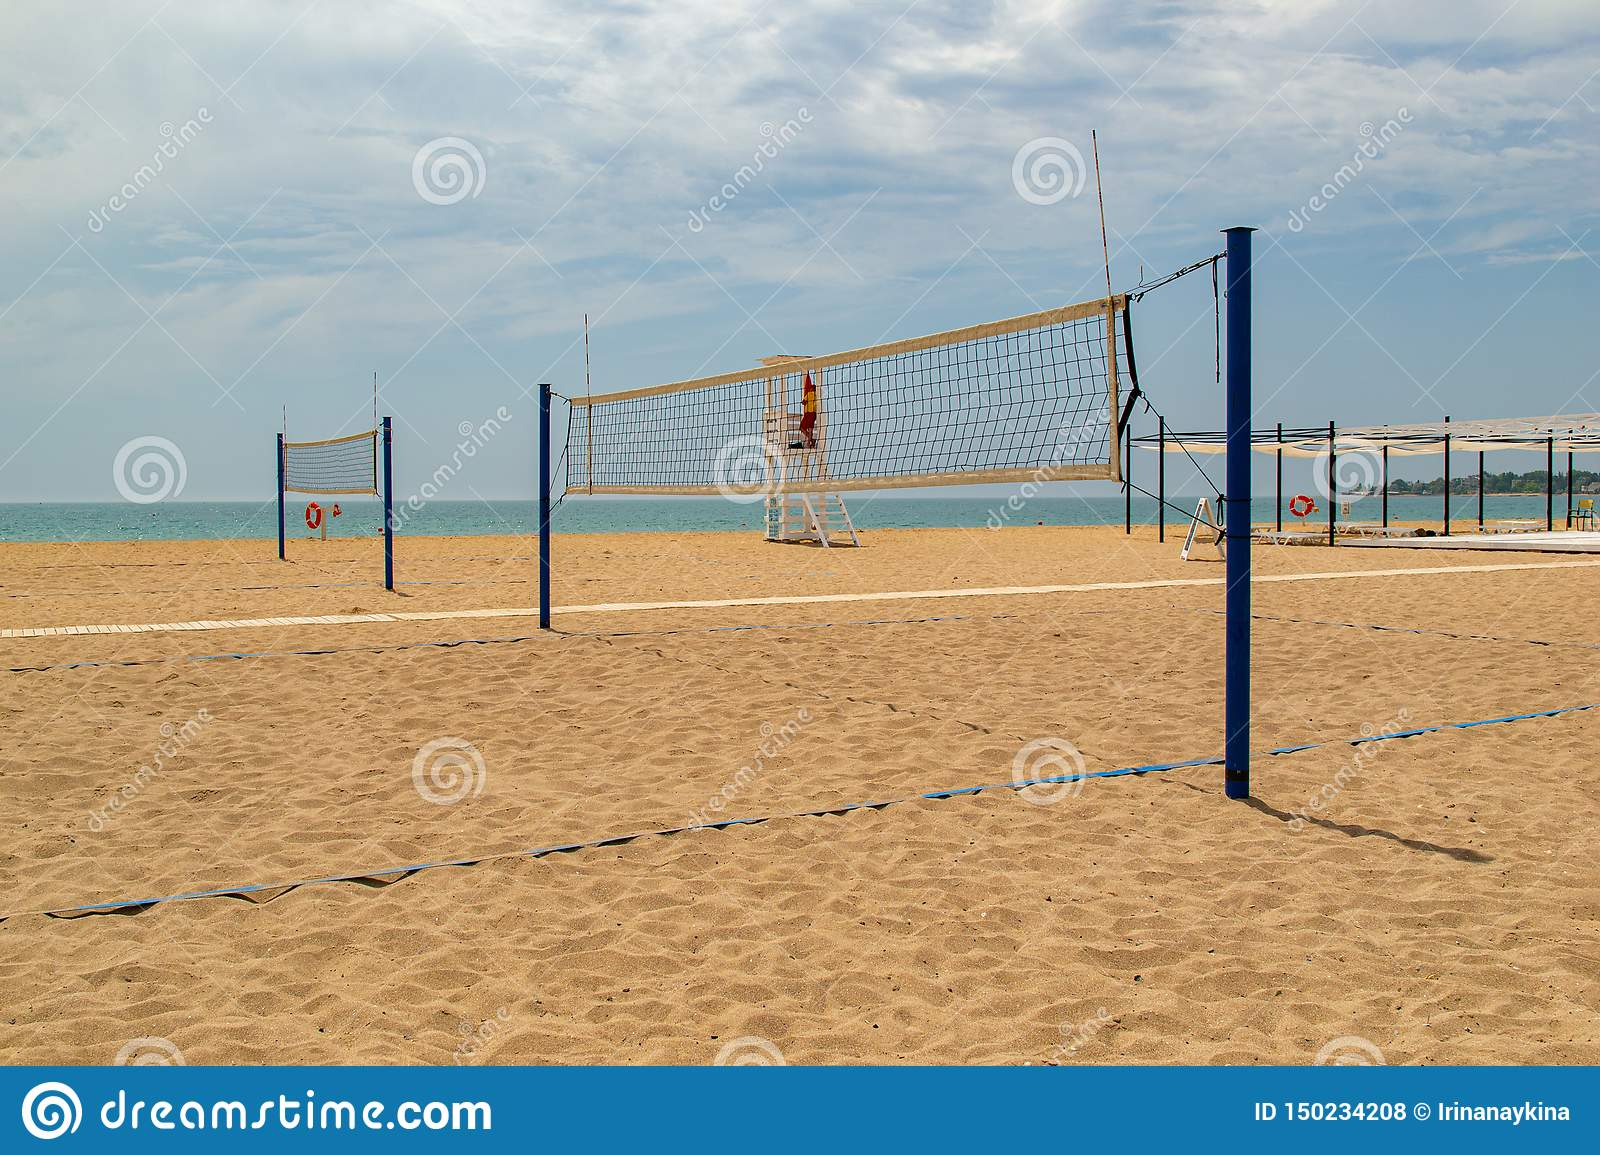 Beach Volleyball Volleyball Court On The Beach Stock Photo Image Of Athlete Relaxation 150234208